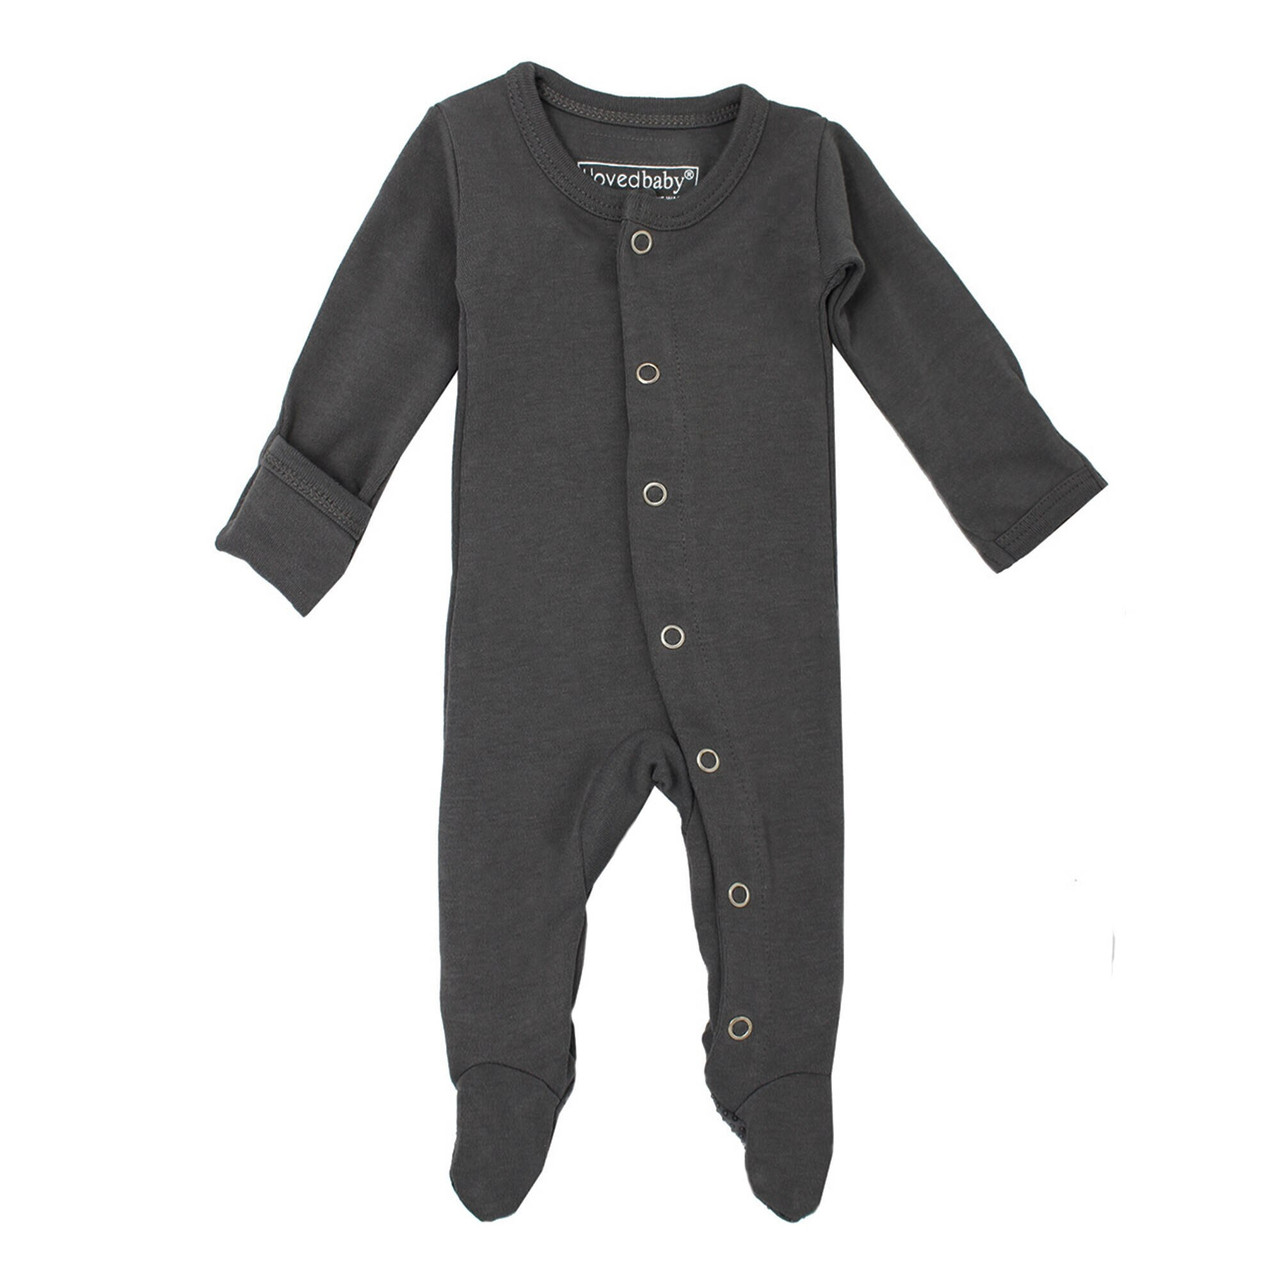 Organic Footed Overall in Gray, Flat